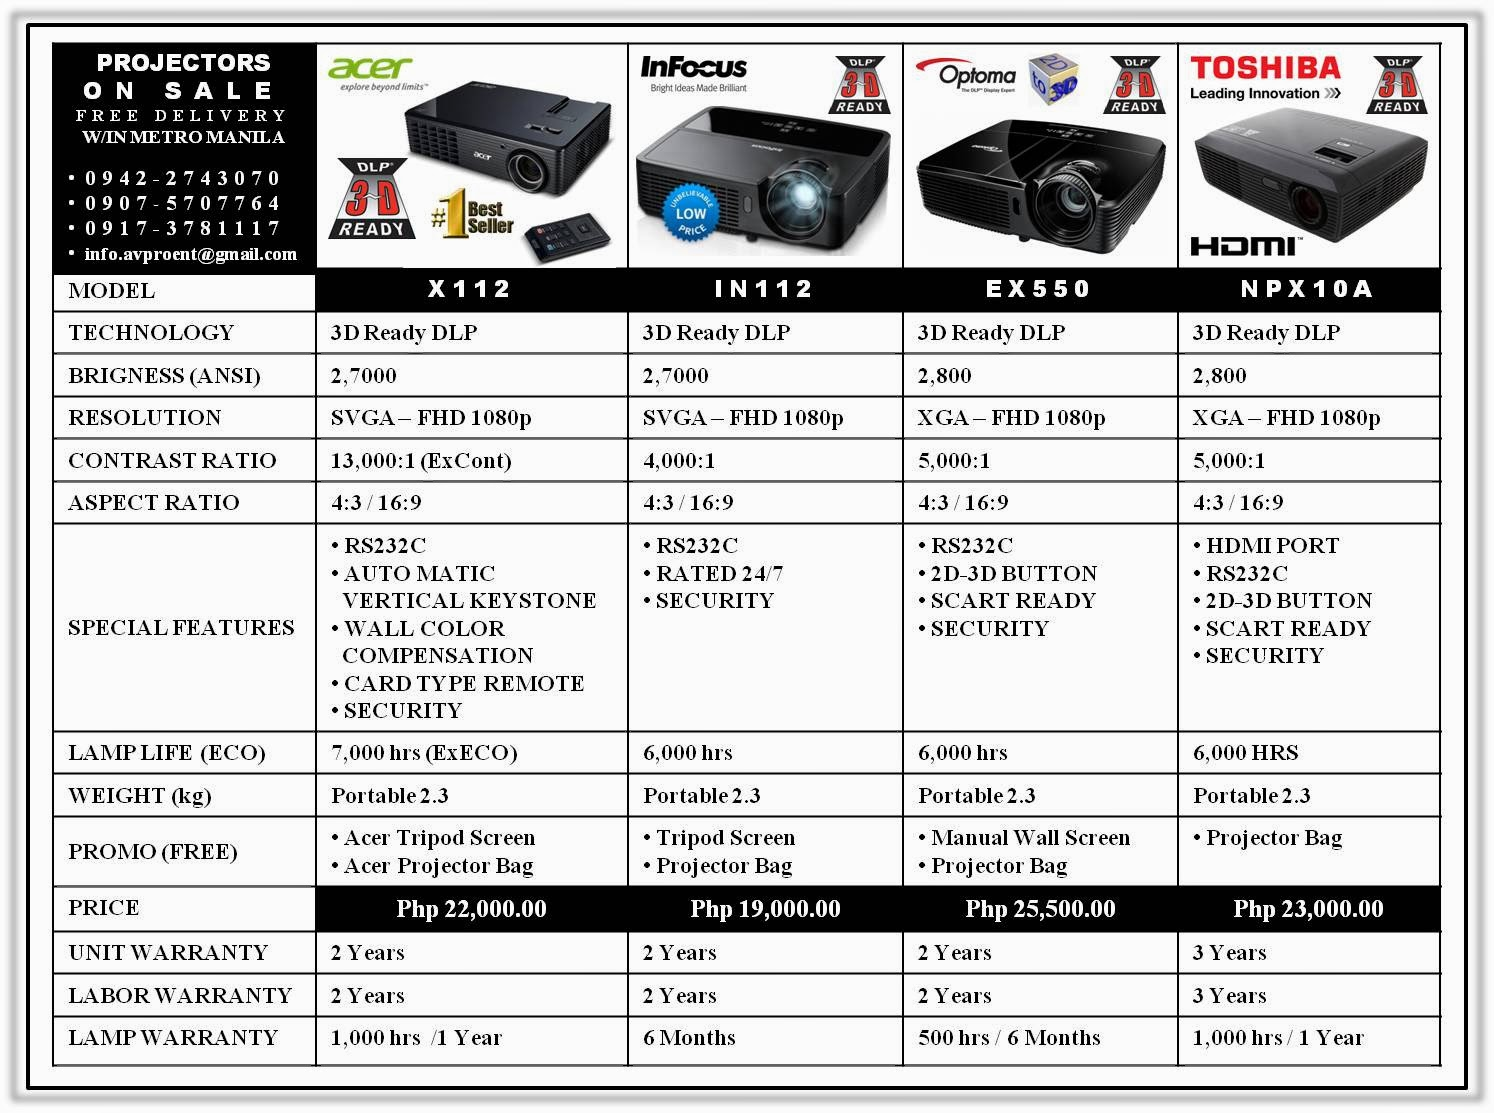 List of new network mobile numbers: Epson EBS18, Epson EBX18